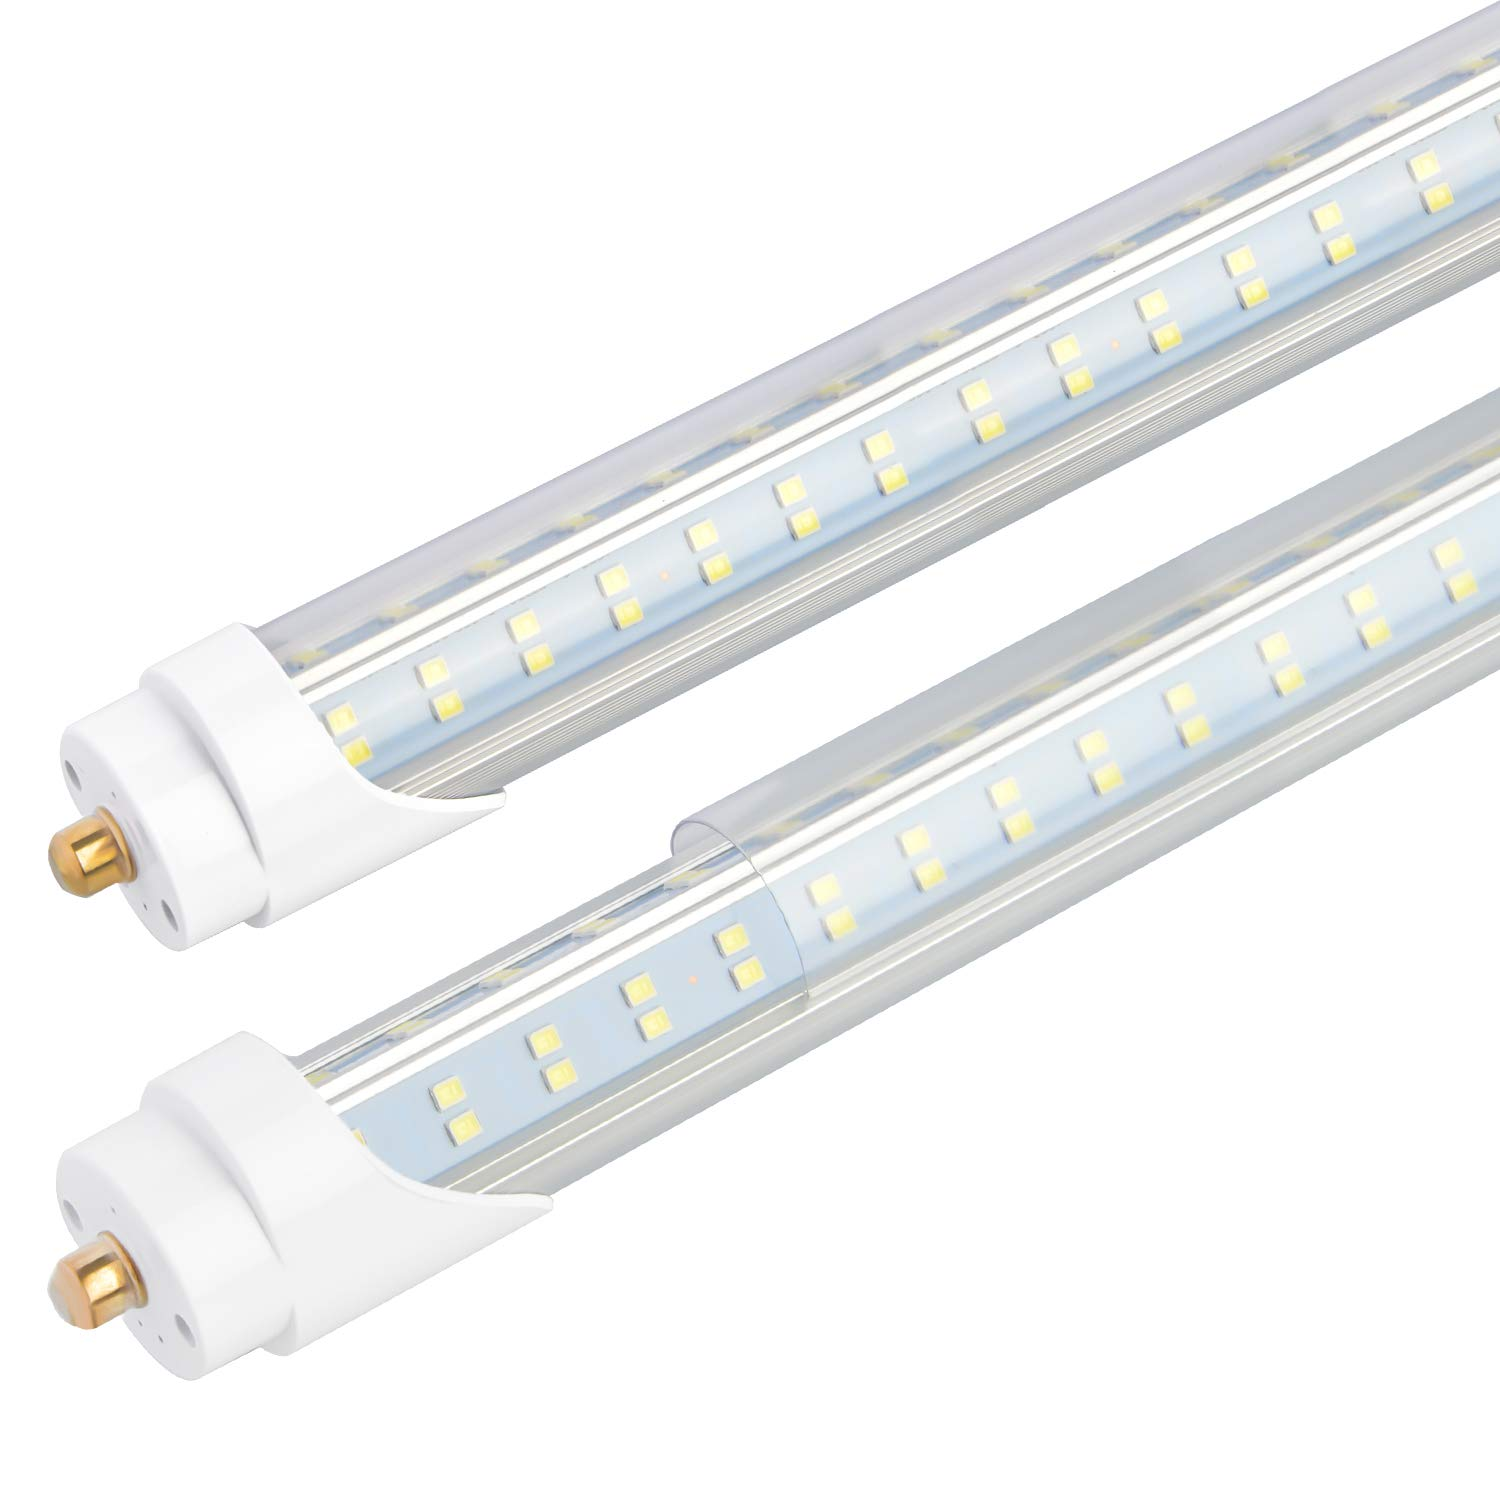 T8 T10 T12 8ft LED Tube Dual-End Powered Single Pin FA8 Base,Double sided 4 Rows 270 Degree V Shaped 768 LED Chip Bulbs 96 120W 6500K 12200 Lumens,Clear Cover Ballast Bypass,12PCS